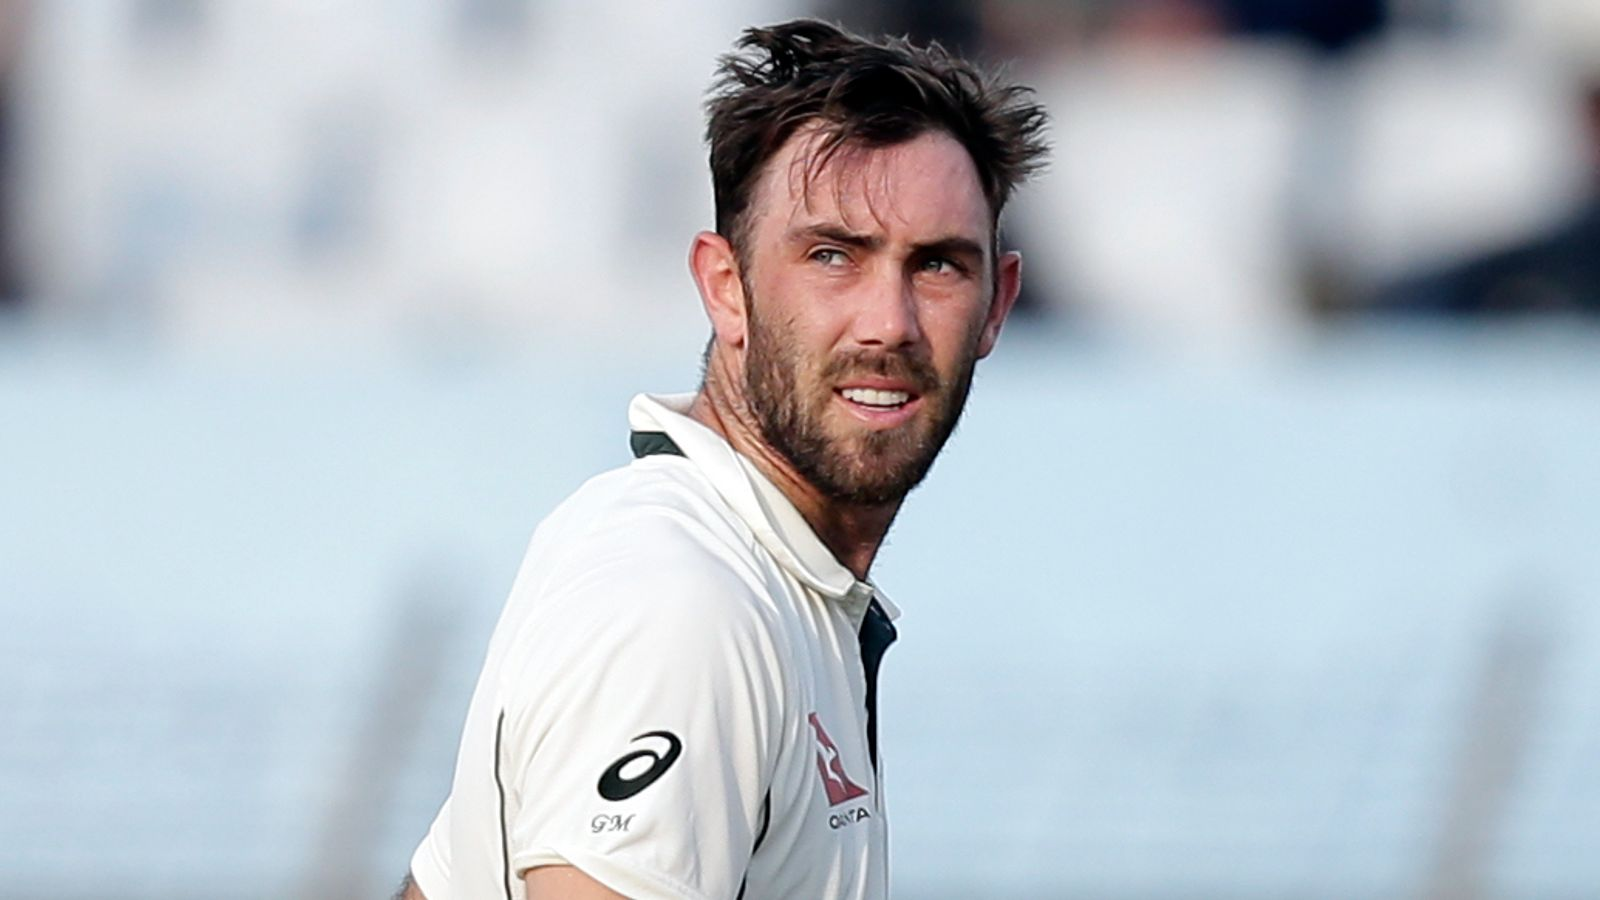 Glenn Maxwell accepts his Australia Test career is probably over